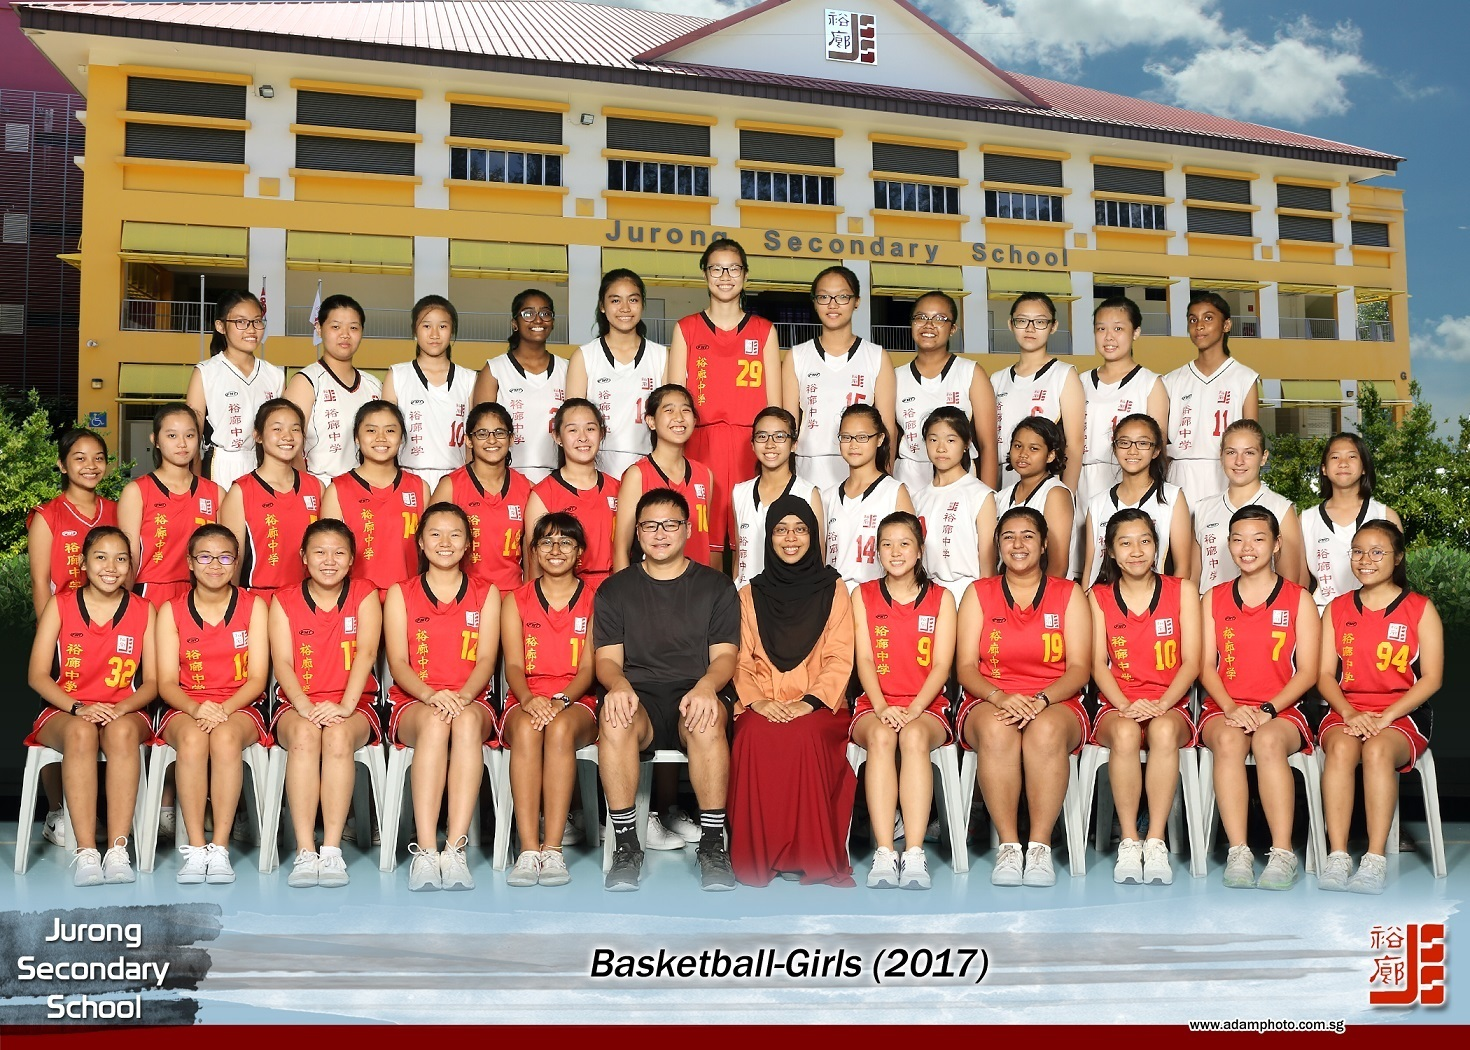 basketball-girls 2.jpg